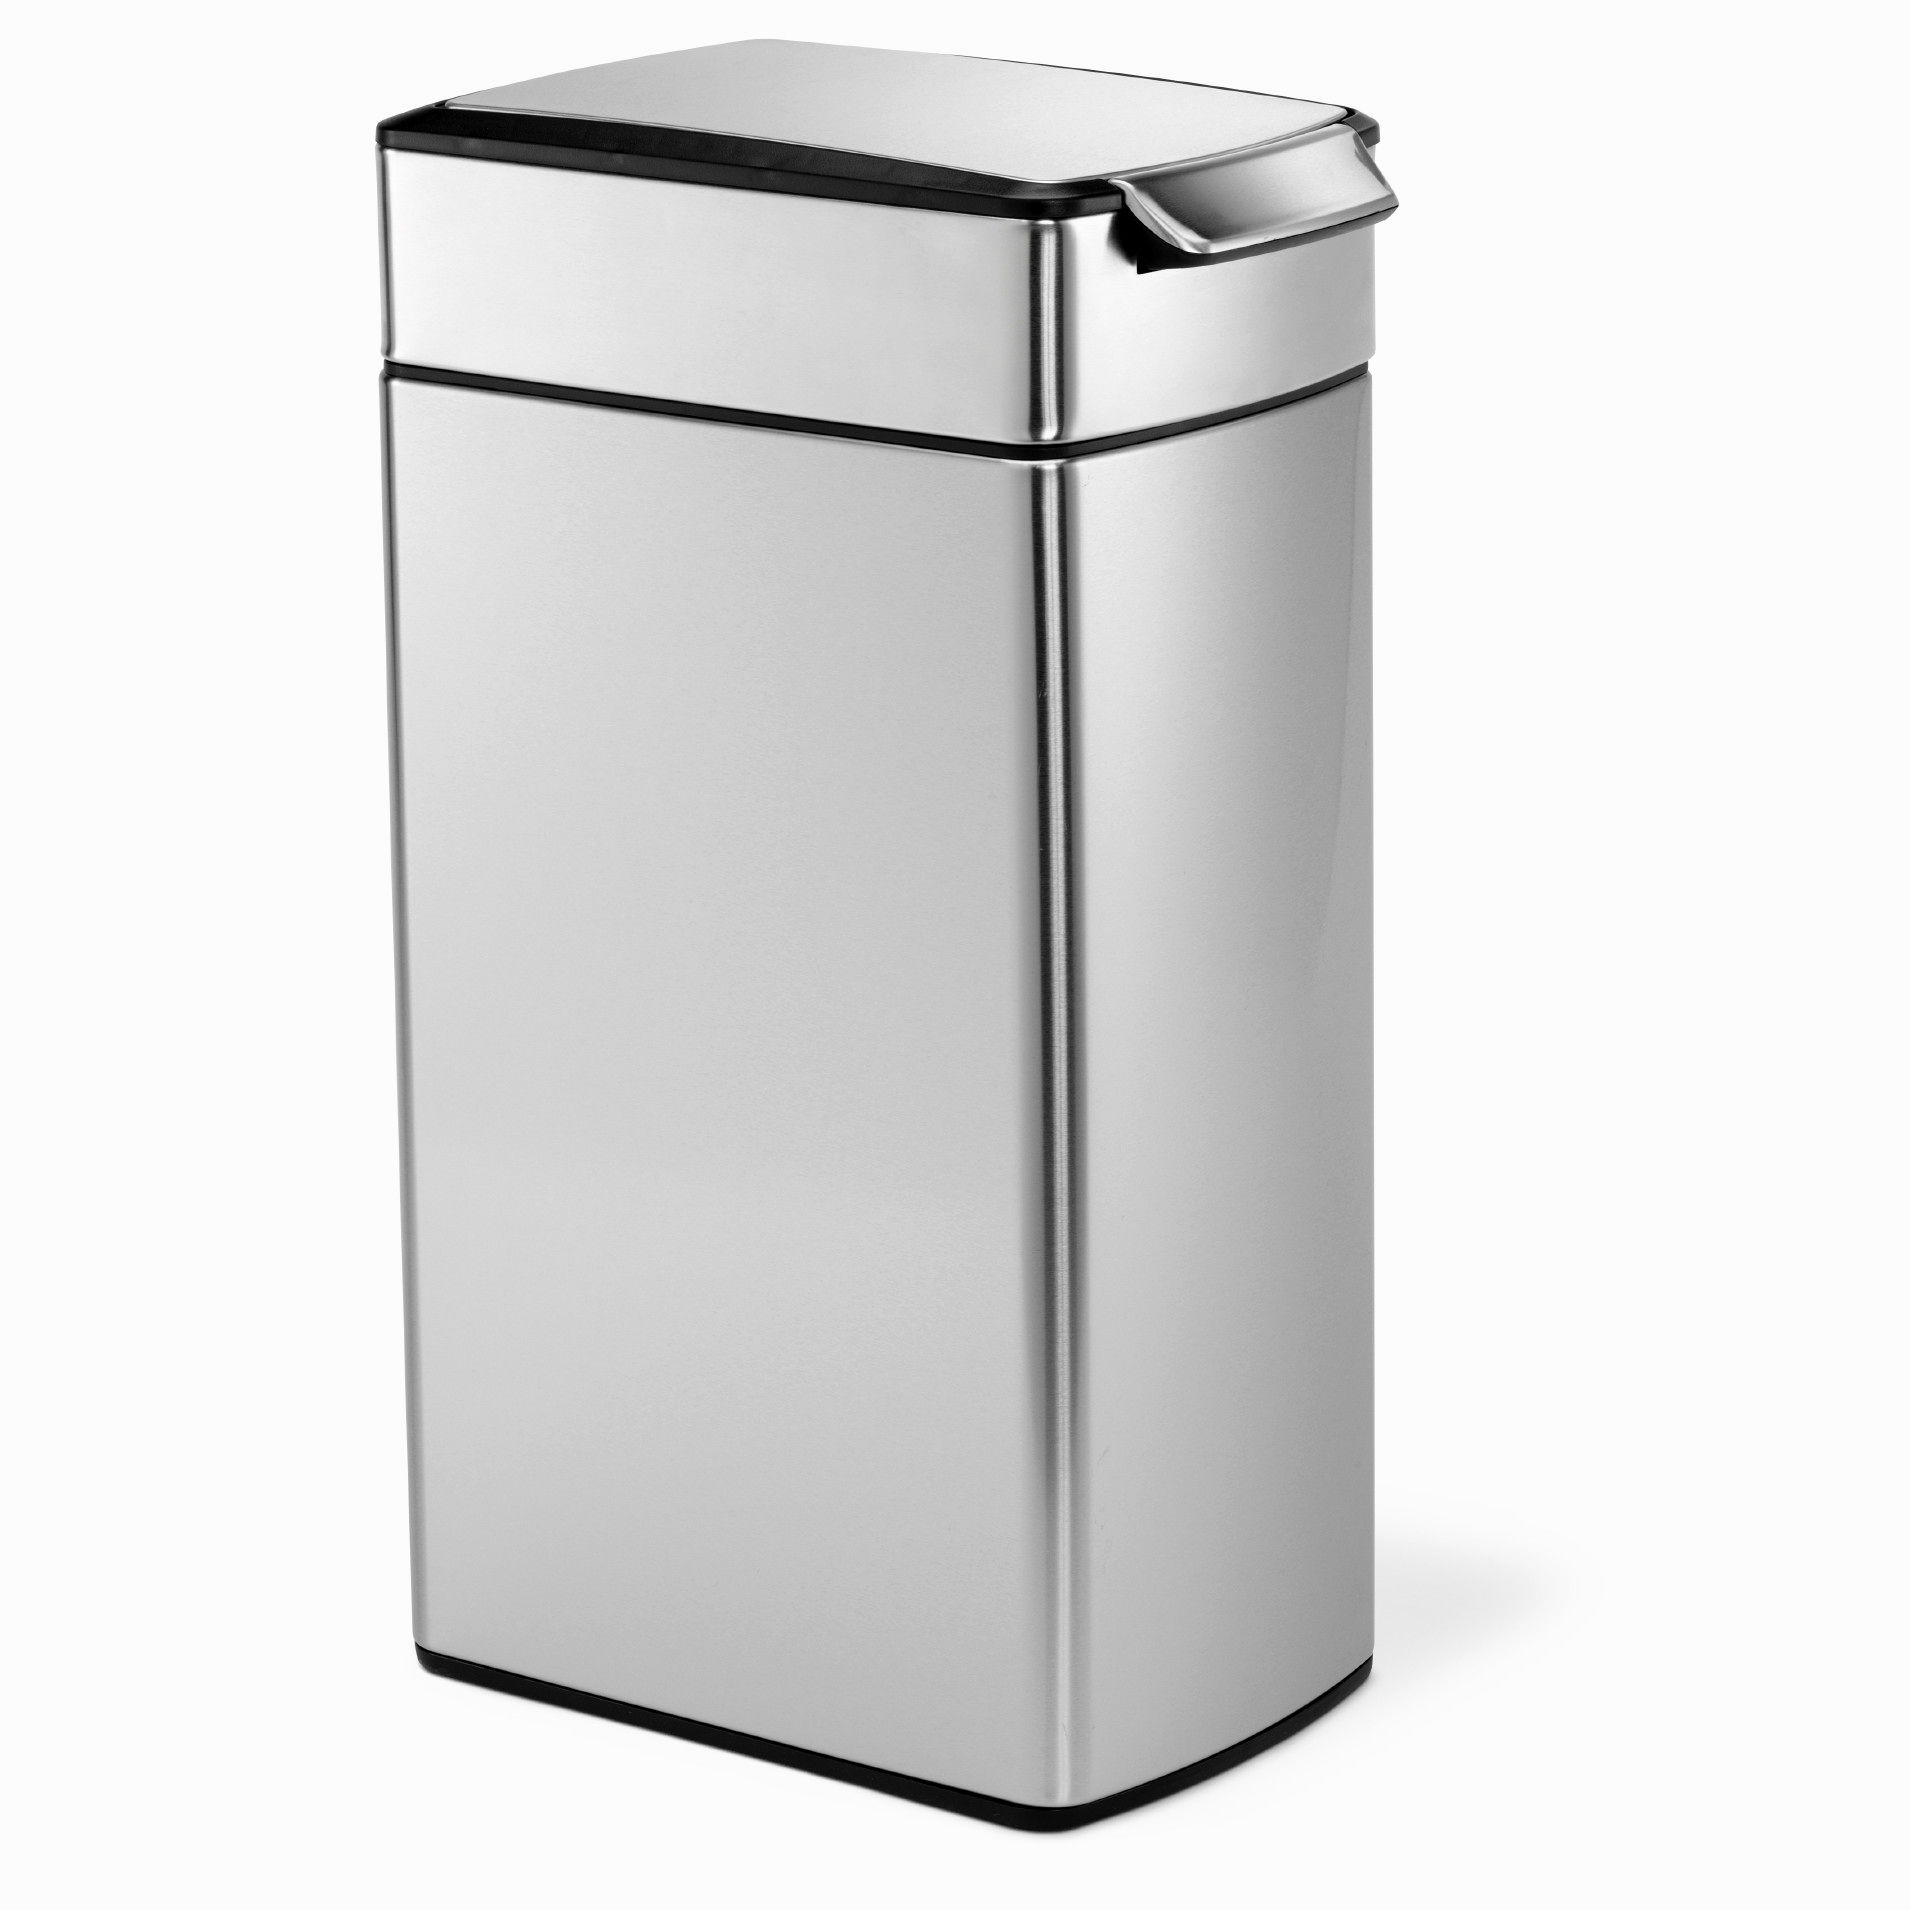 Target Kitchen Trash Cans: Stylish Simplehuman Bathroom Trash Can Model